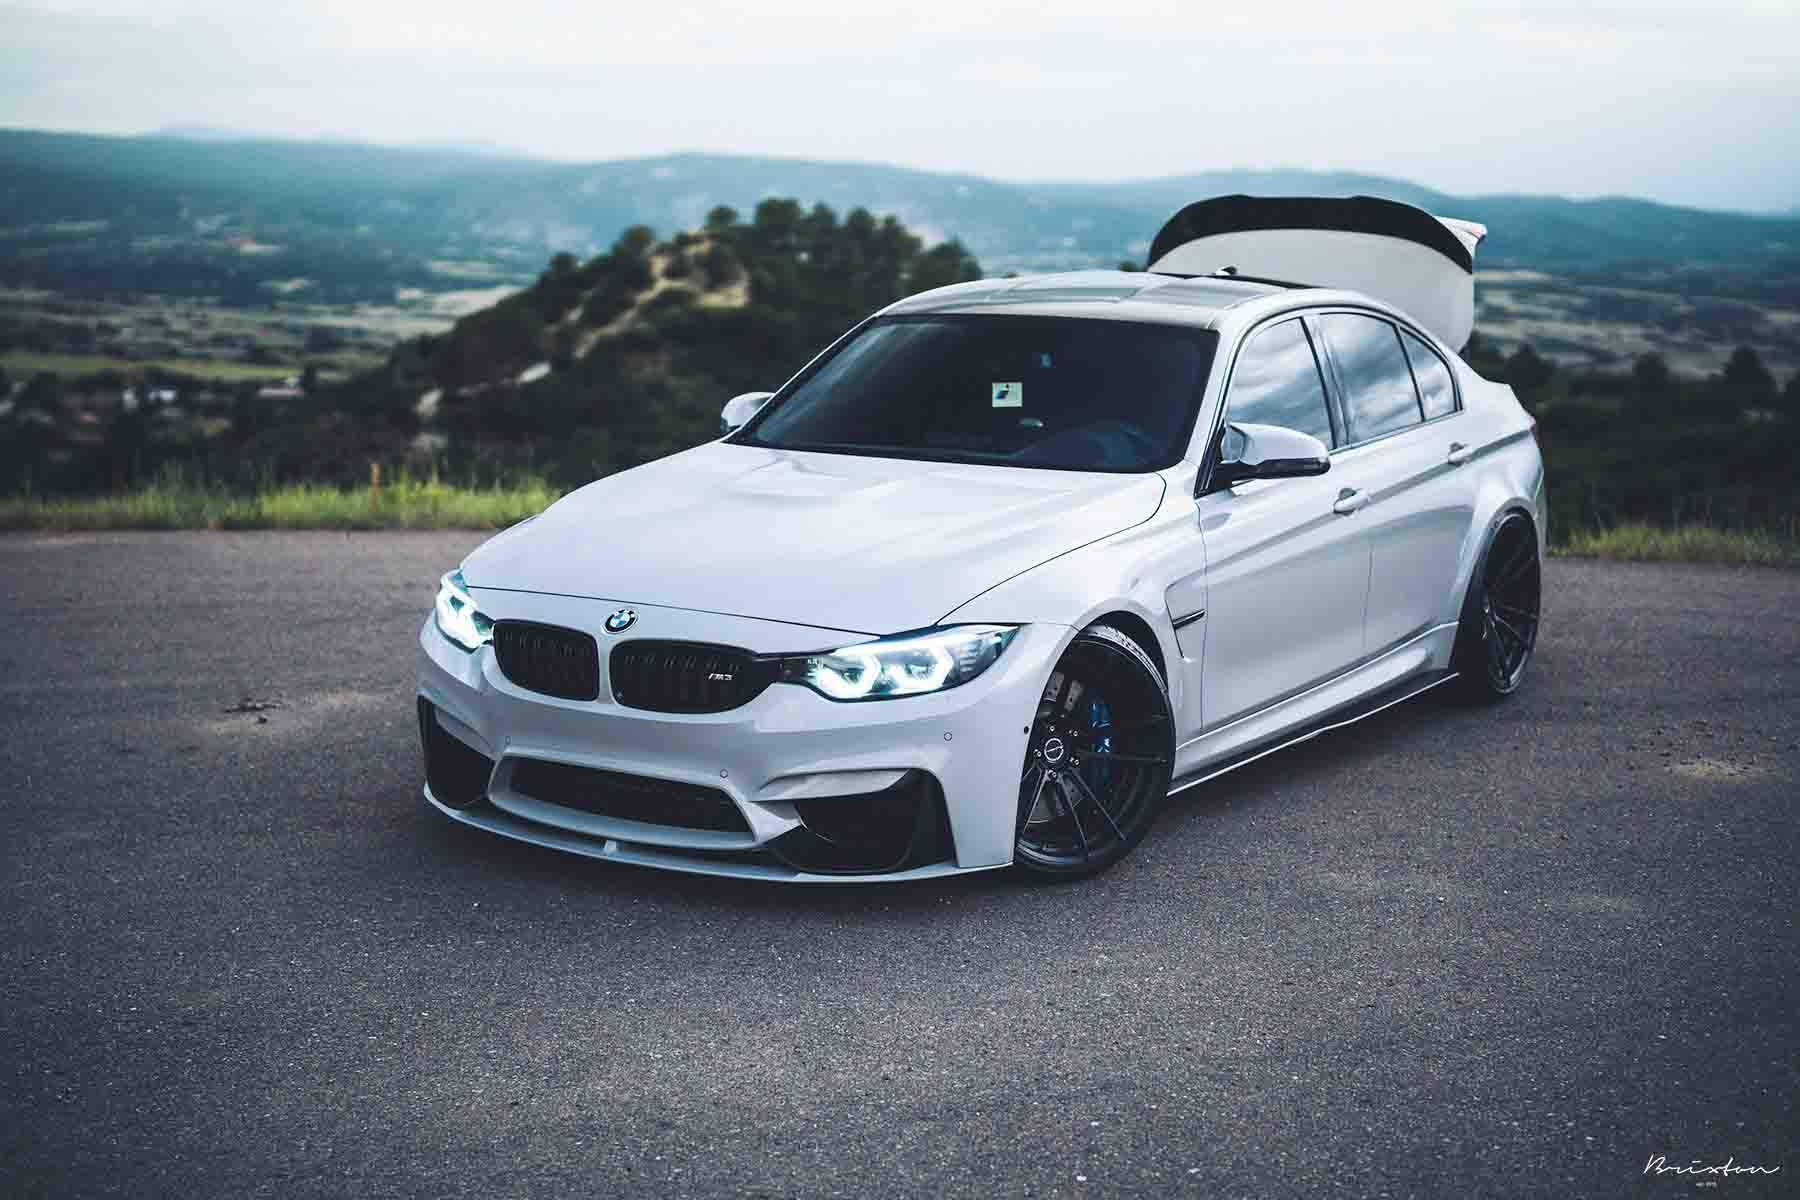 images-products-1-2160-232974448-bmw-f80-m3-brixton-forged-m51-02-1800x1200.jpg